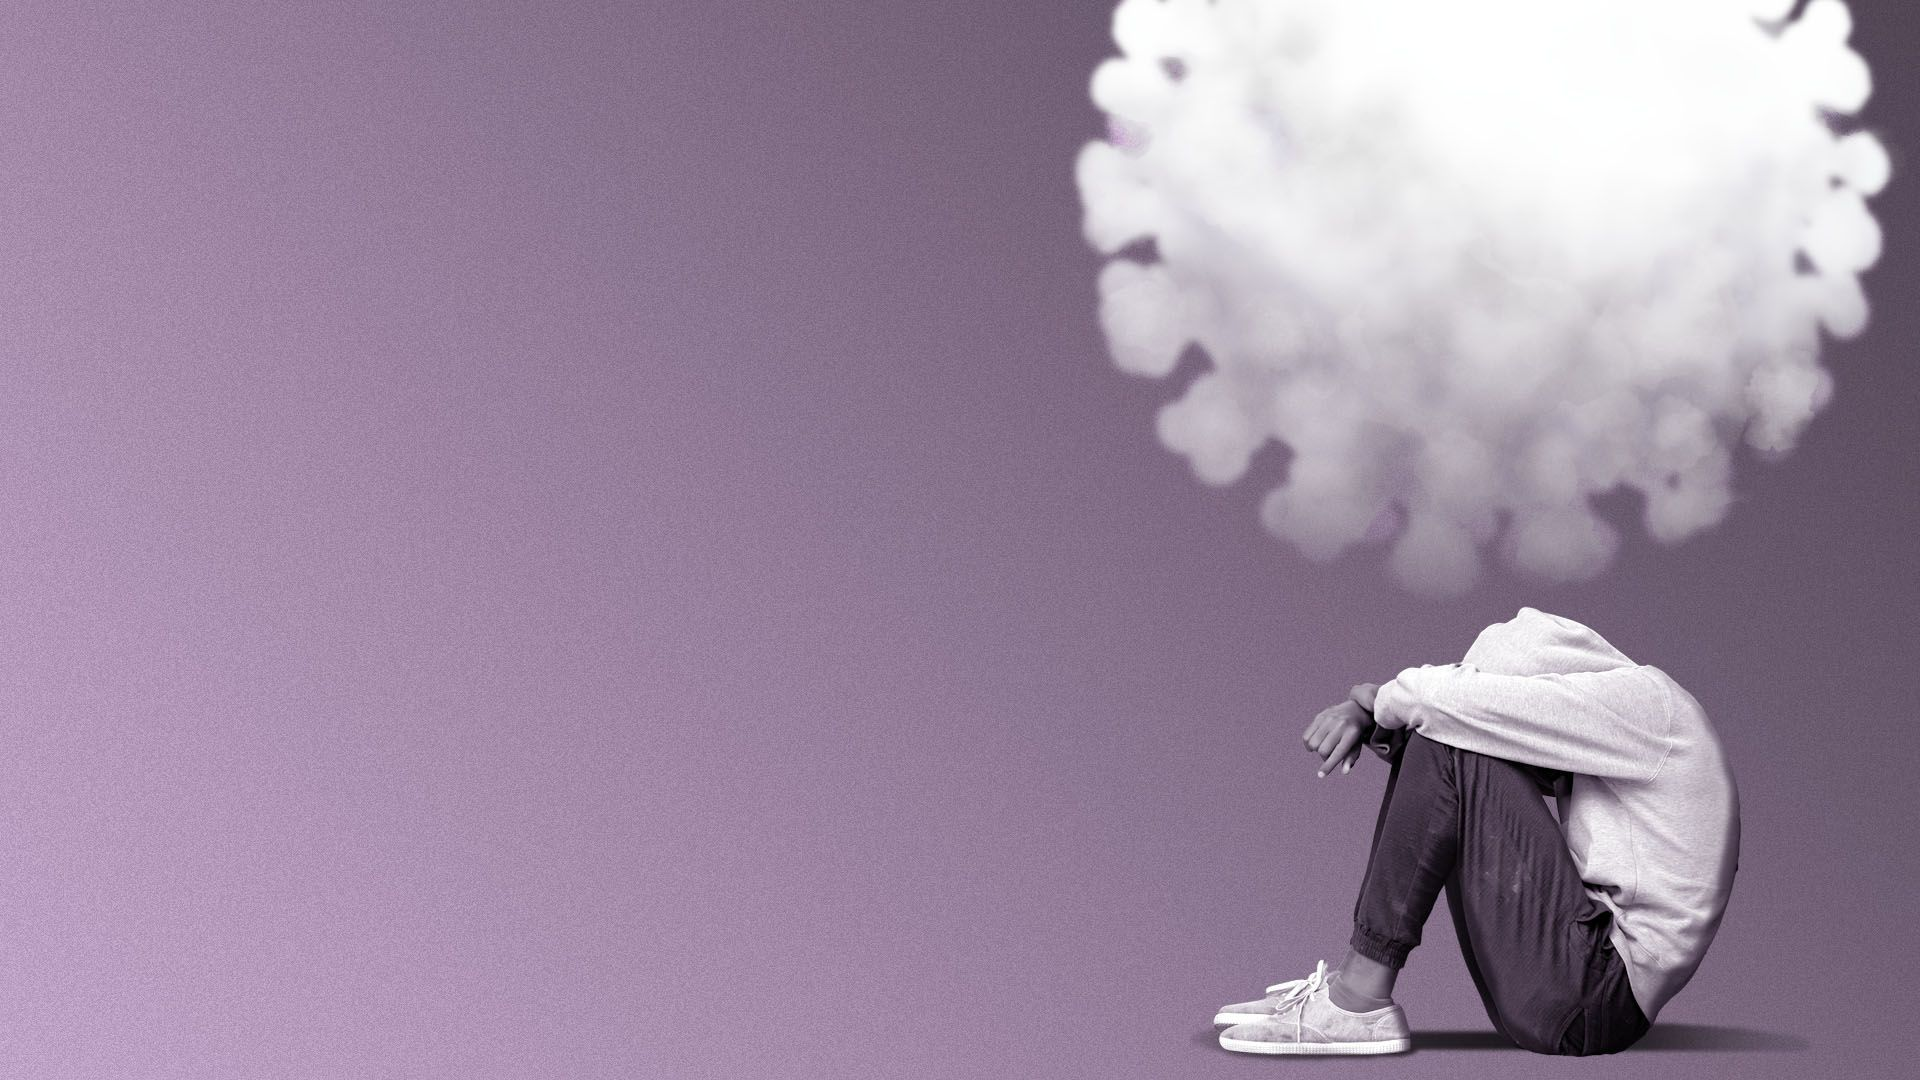 Illustration of a person sitting under a cloud shaped like a virus